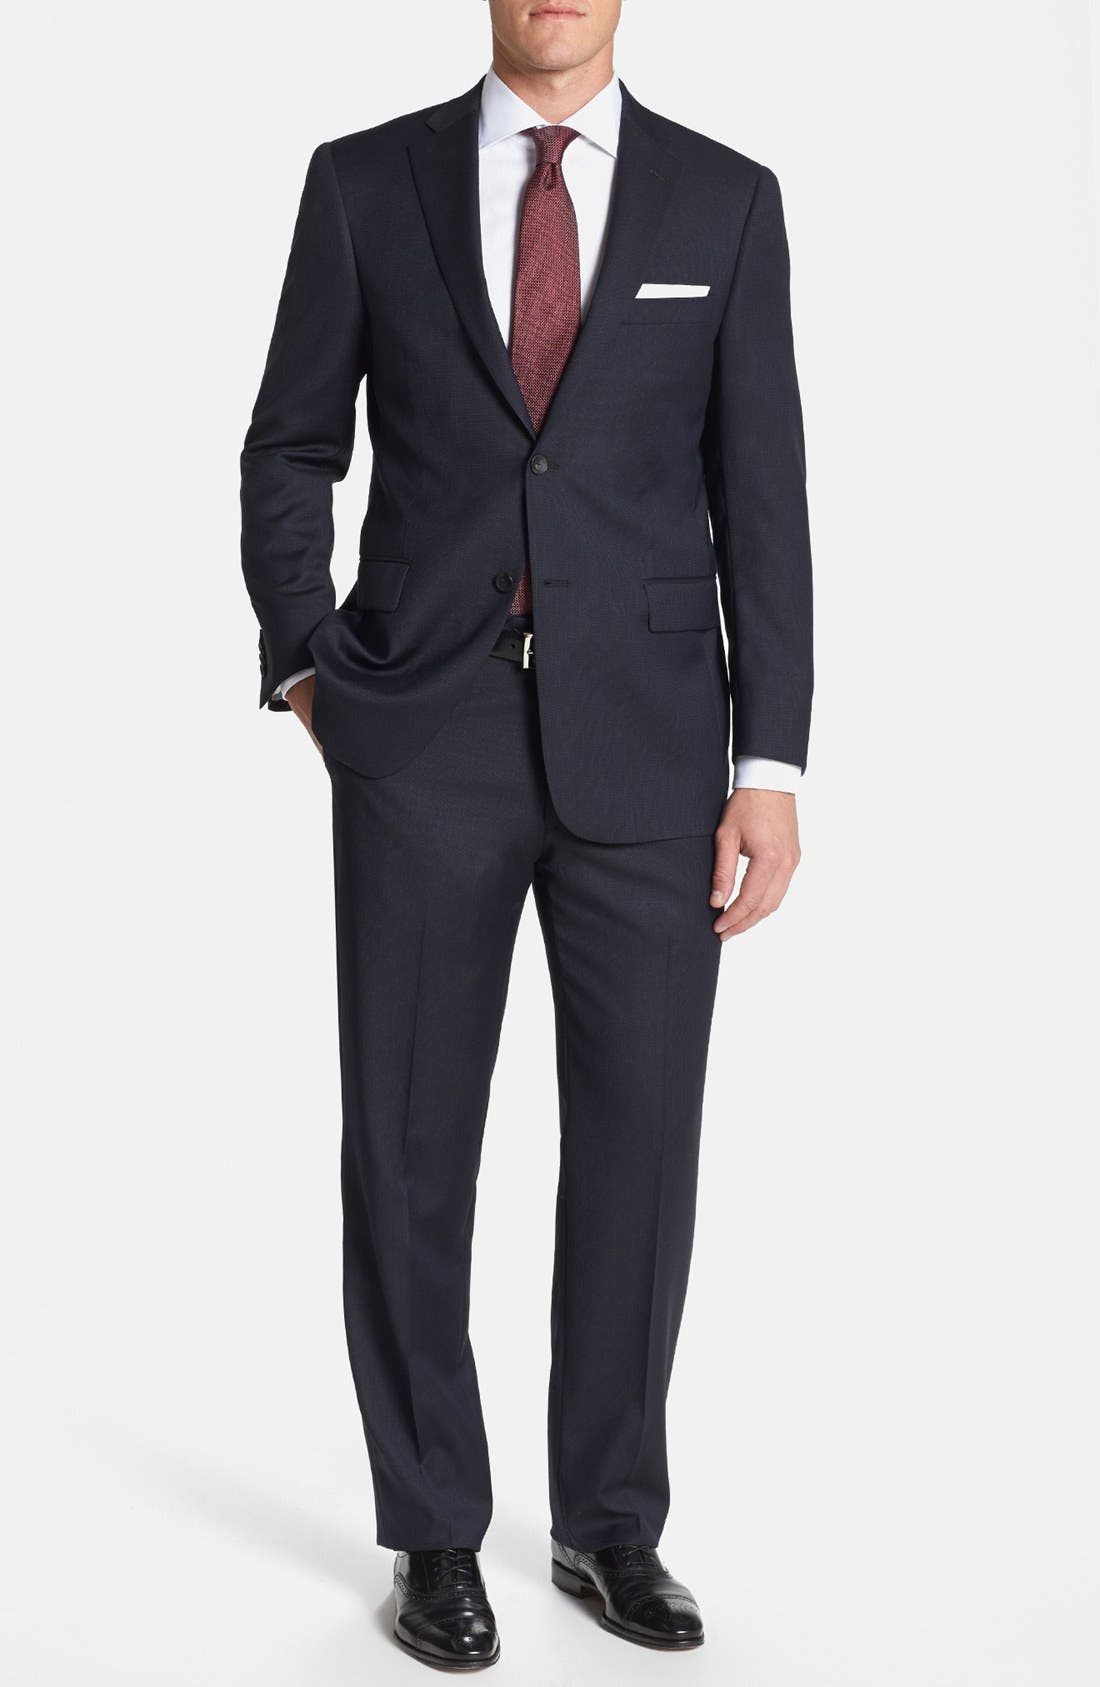 Alternate Image 1 Selected - Hart Schaffner Marx 'New York' Classic Fit Stripe Suit